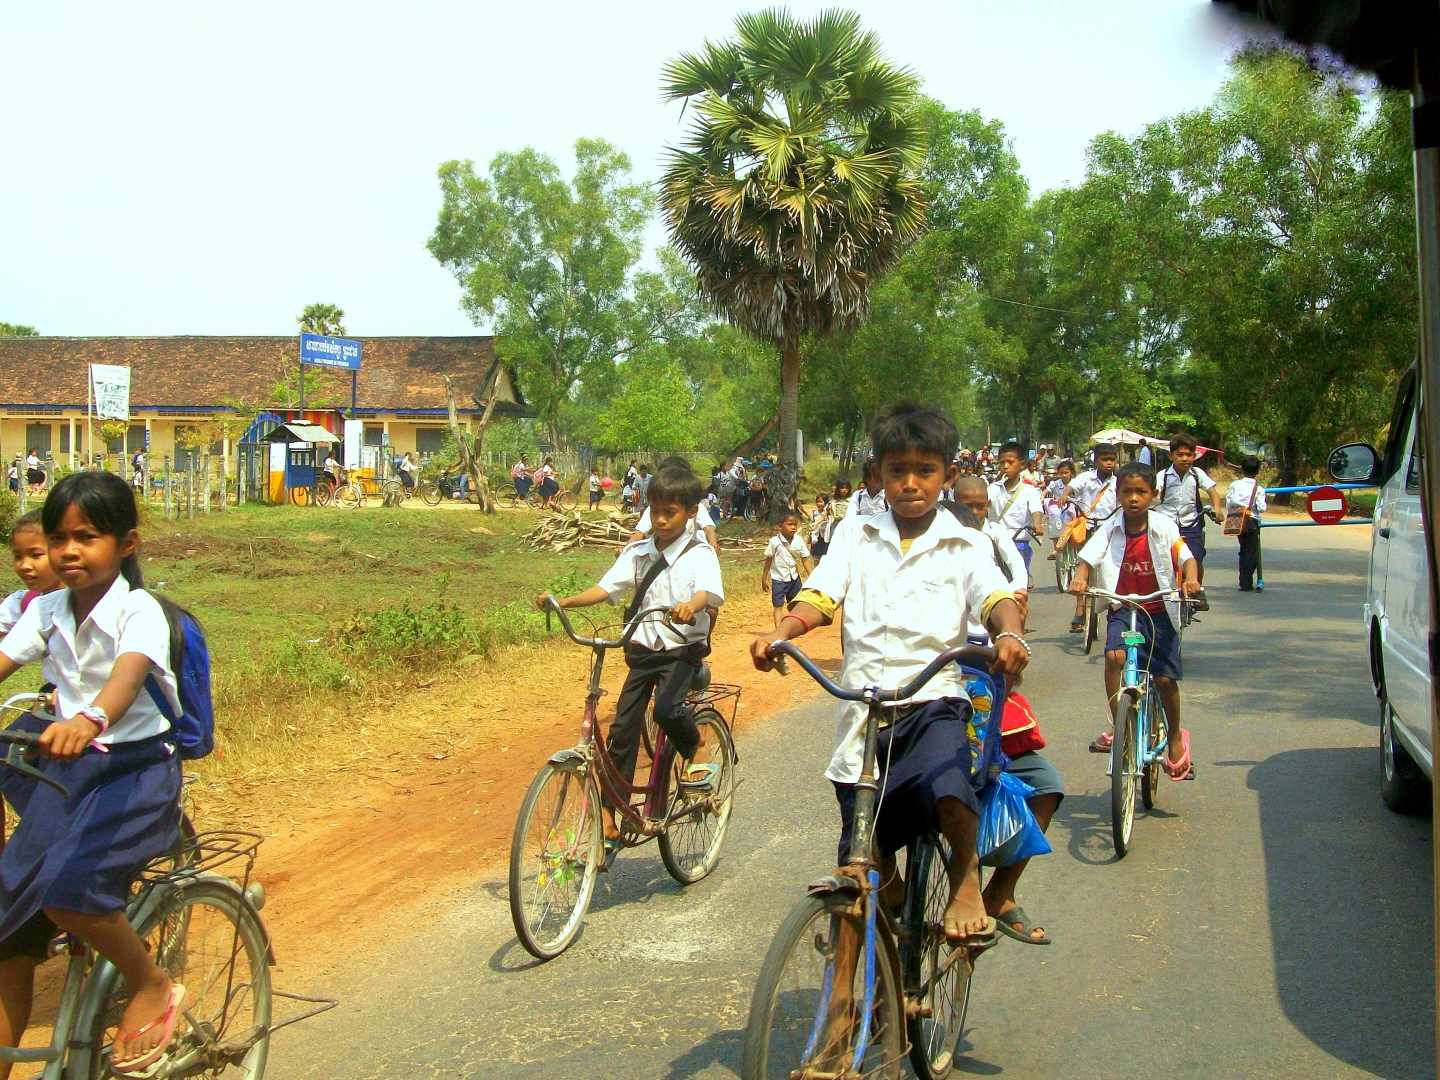 School children on the road between Luang Prabang & Banteay Srey outlying temple = Cambodia